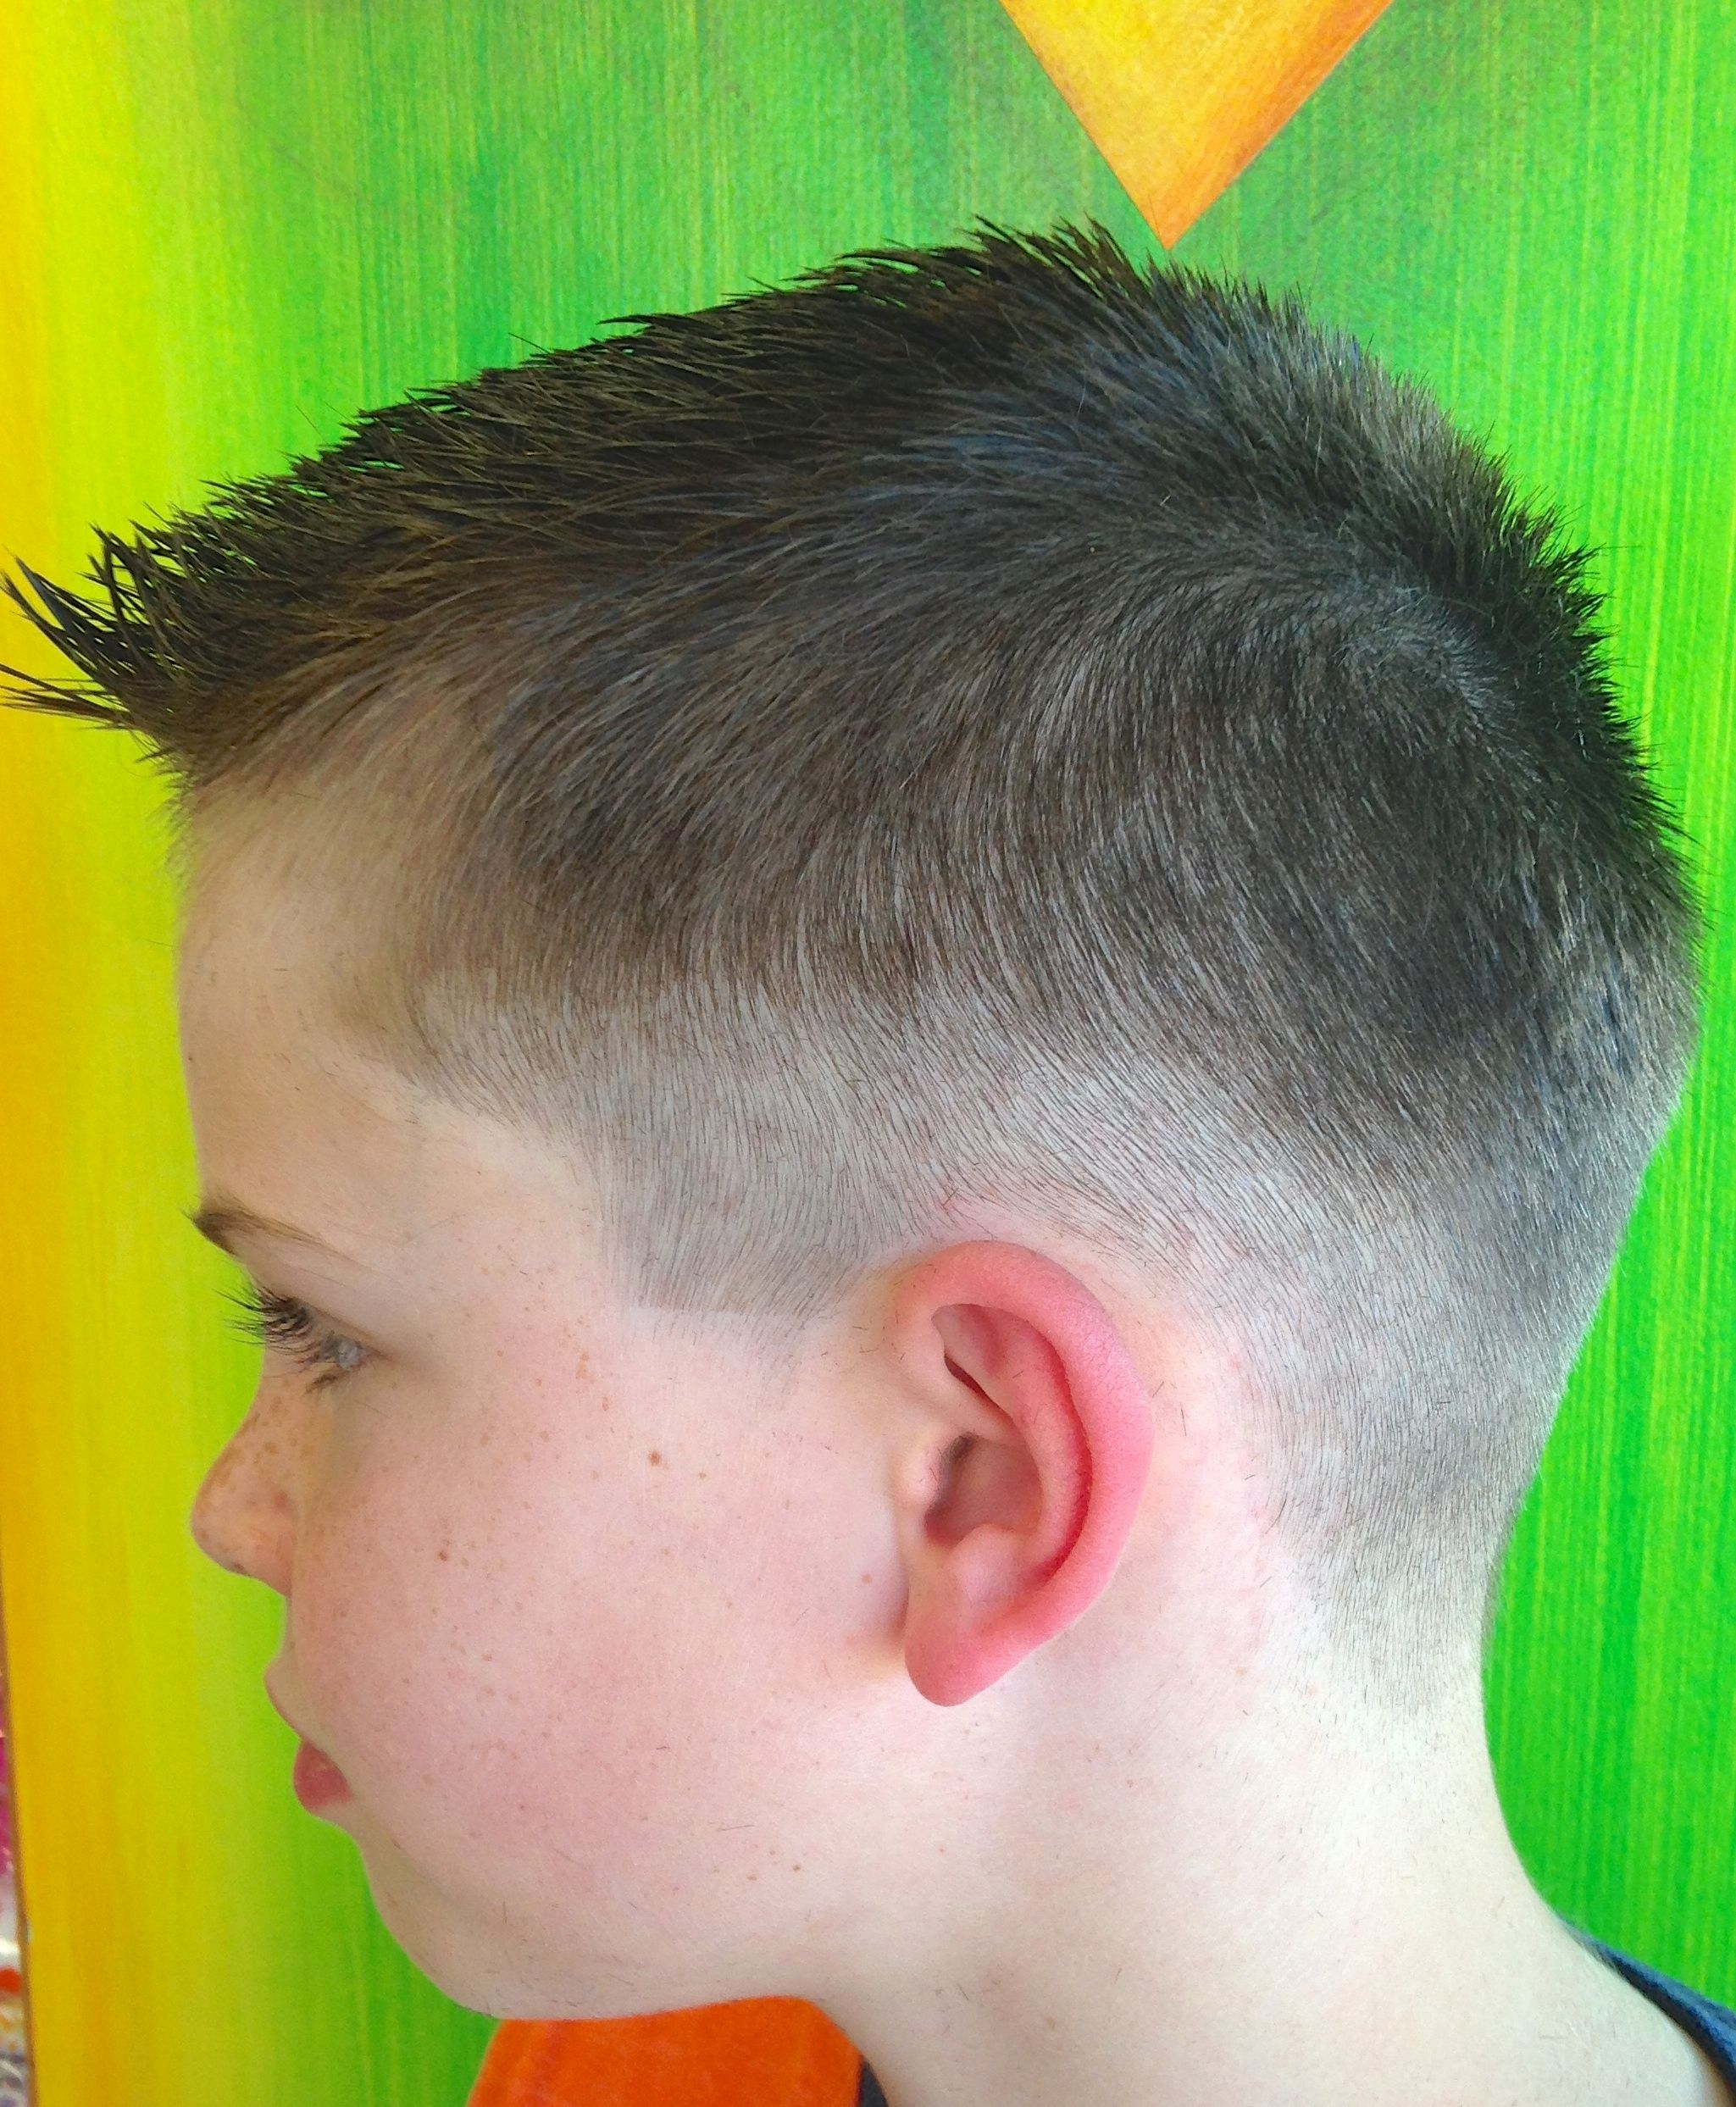 fade haircuts for little boys boys fade haircuts search and 4437 | f406a5816a9397208405363cba40bc03